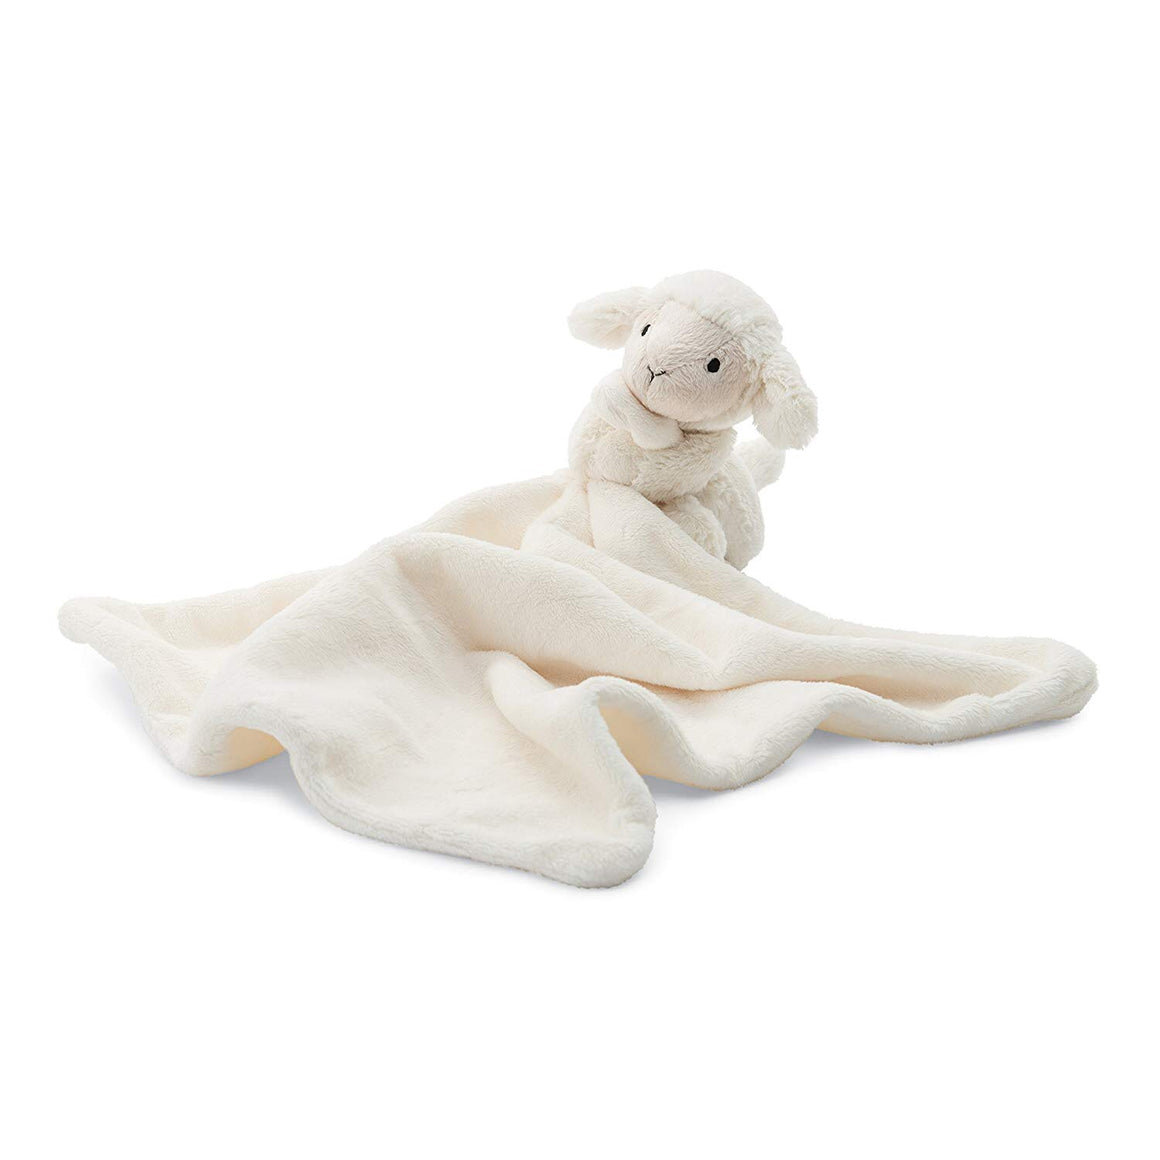 A sweet, cuddly lamb snuggles one corner of a plush, wonderfully soft blanket baby will love to cozy up with.